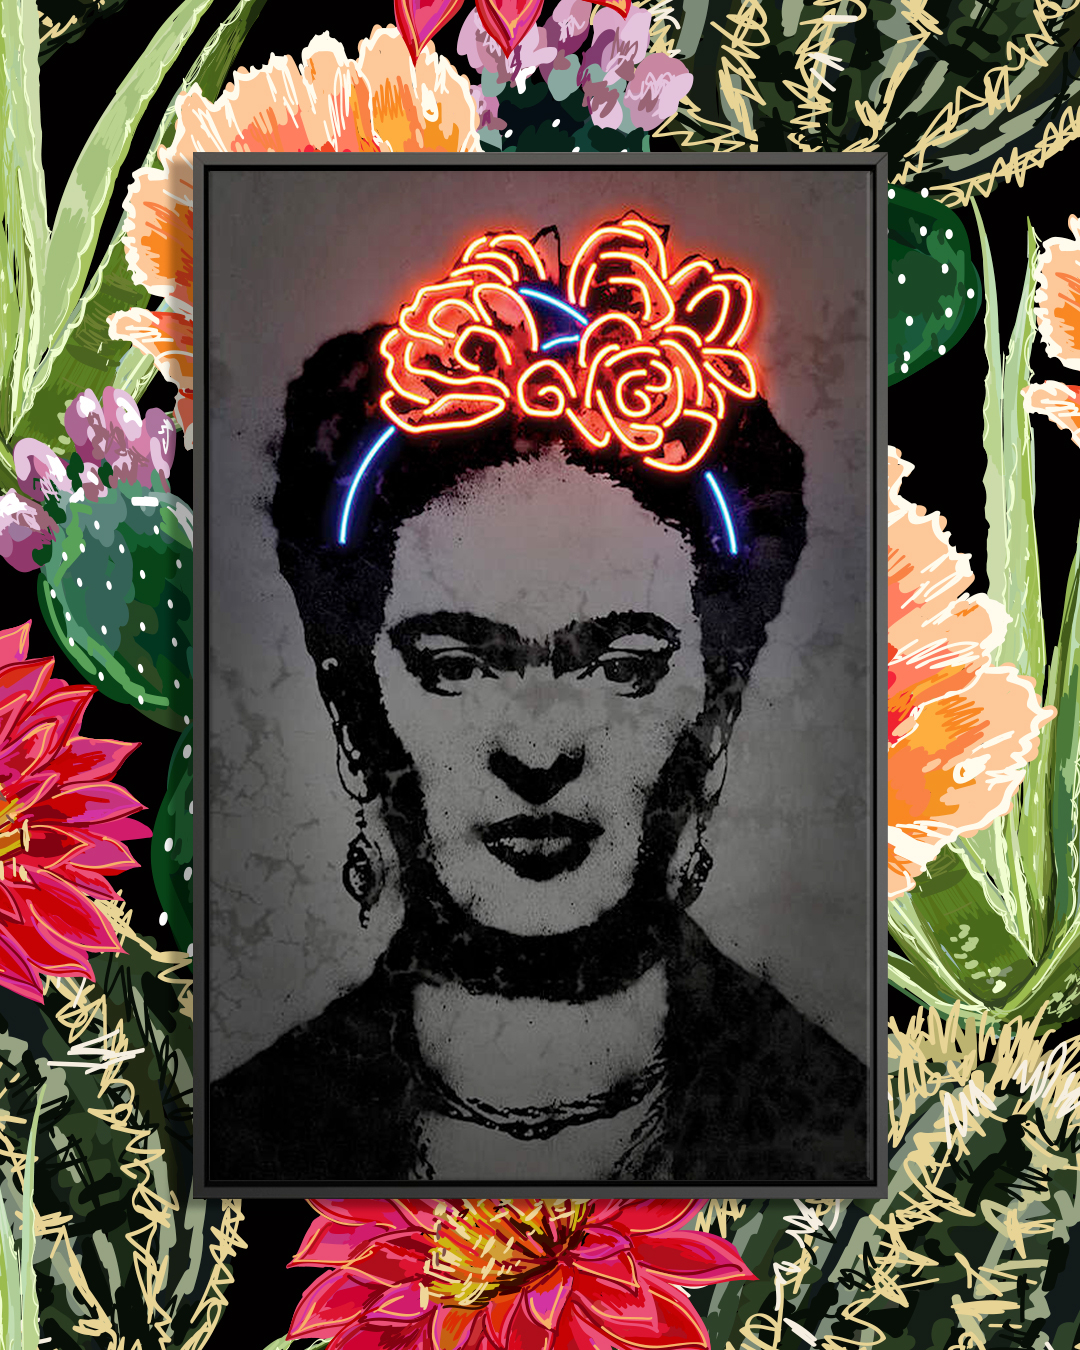 Black and white portrait of Frida Kahlo wearing a neon-lit flower crown over a floral background